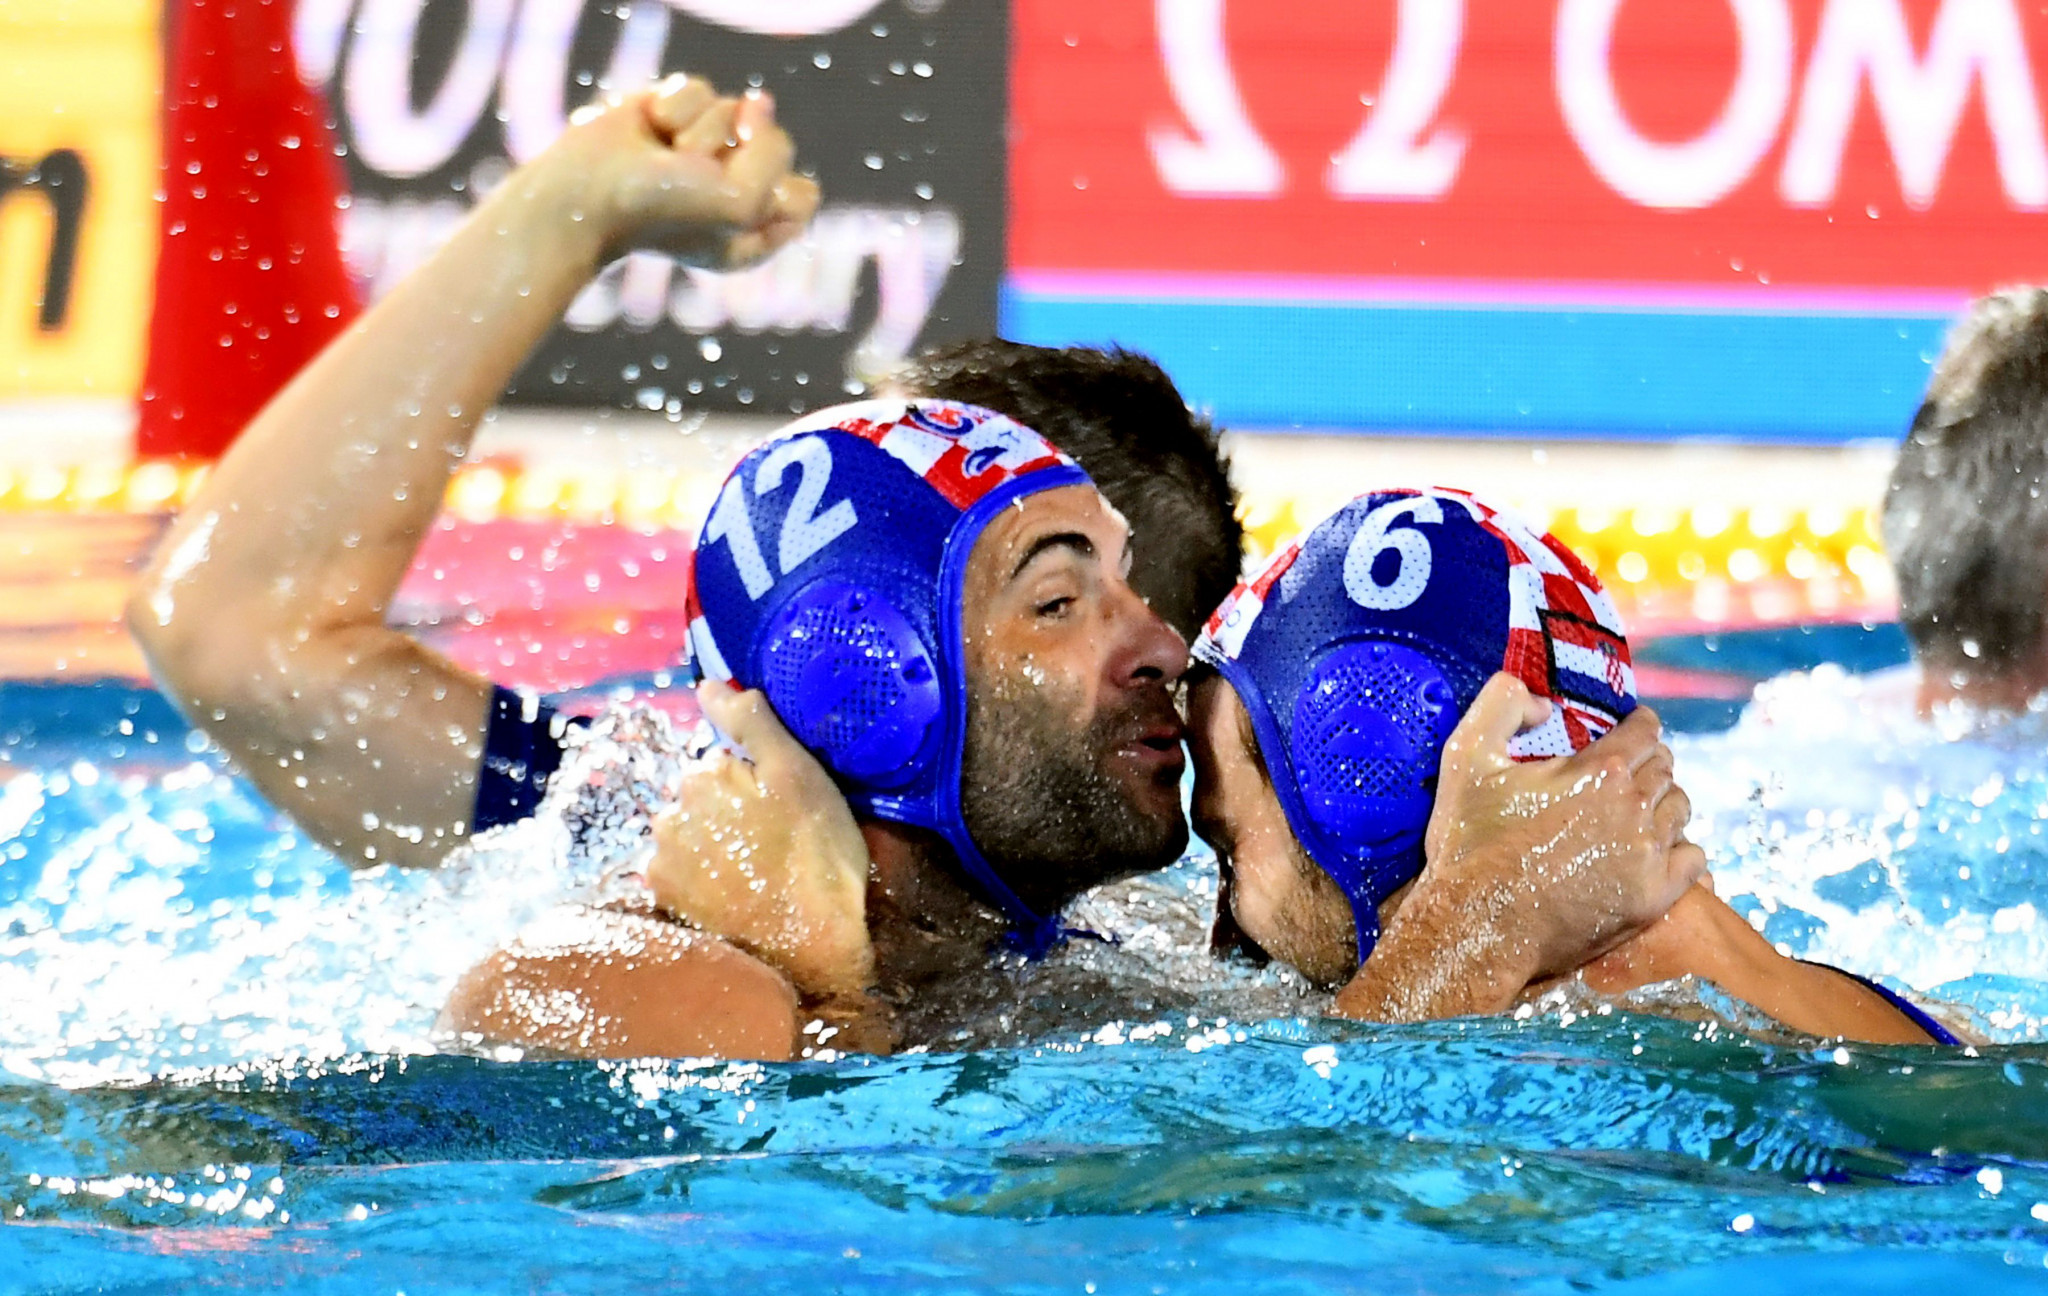 World champions Croatia win again at FINA Water Polo World League